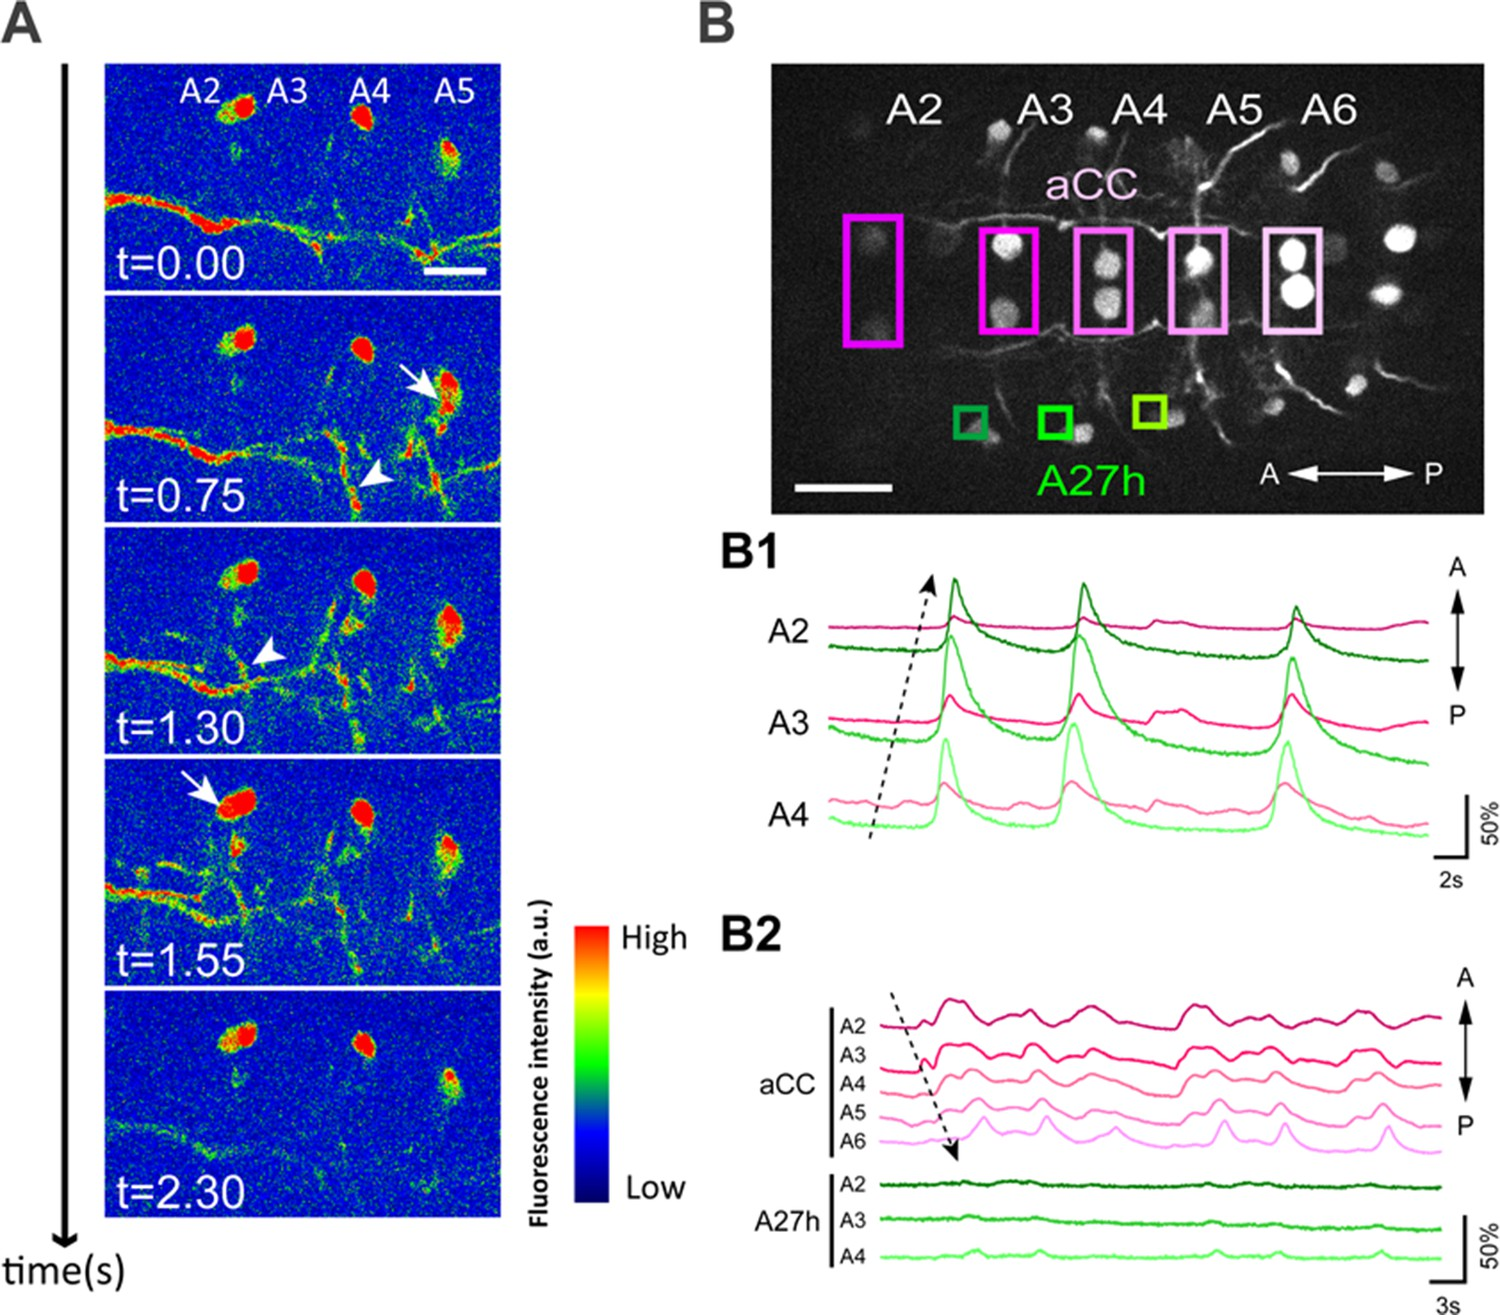 A Circuit Mechanism For The Propagation Of Waves Muscle Simple 555 Timer Circuits Moreover Sequential Light Diagram A27h Participates In Forward Motor Activity